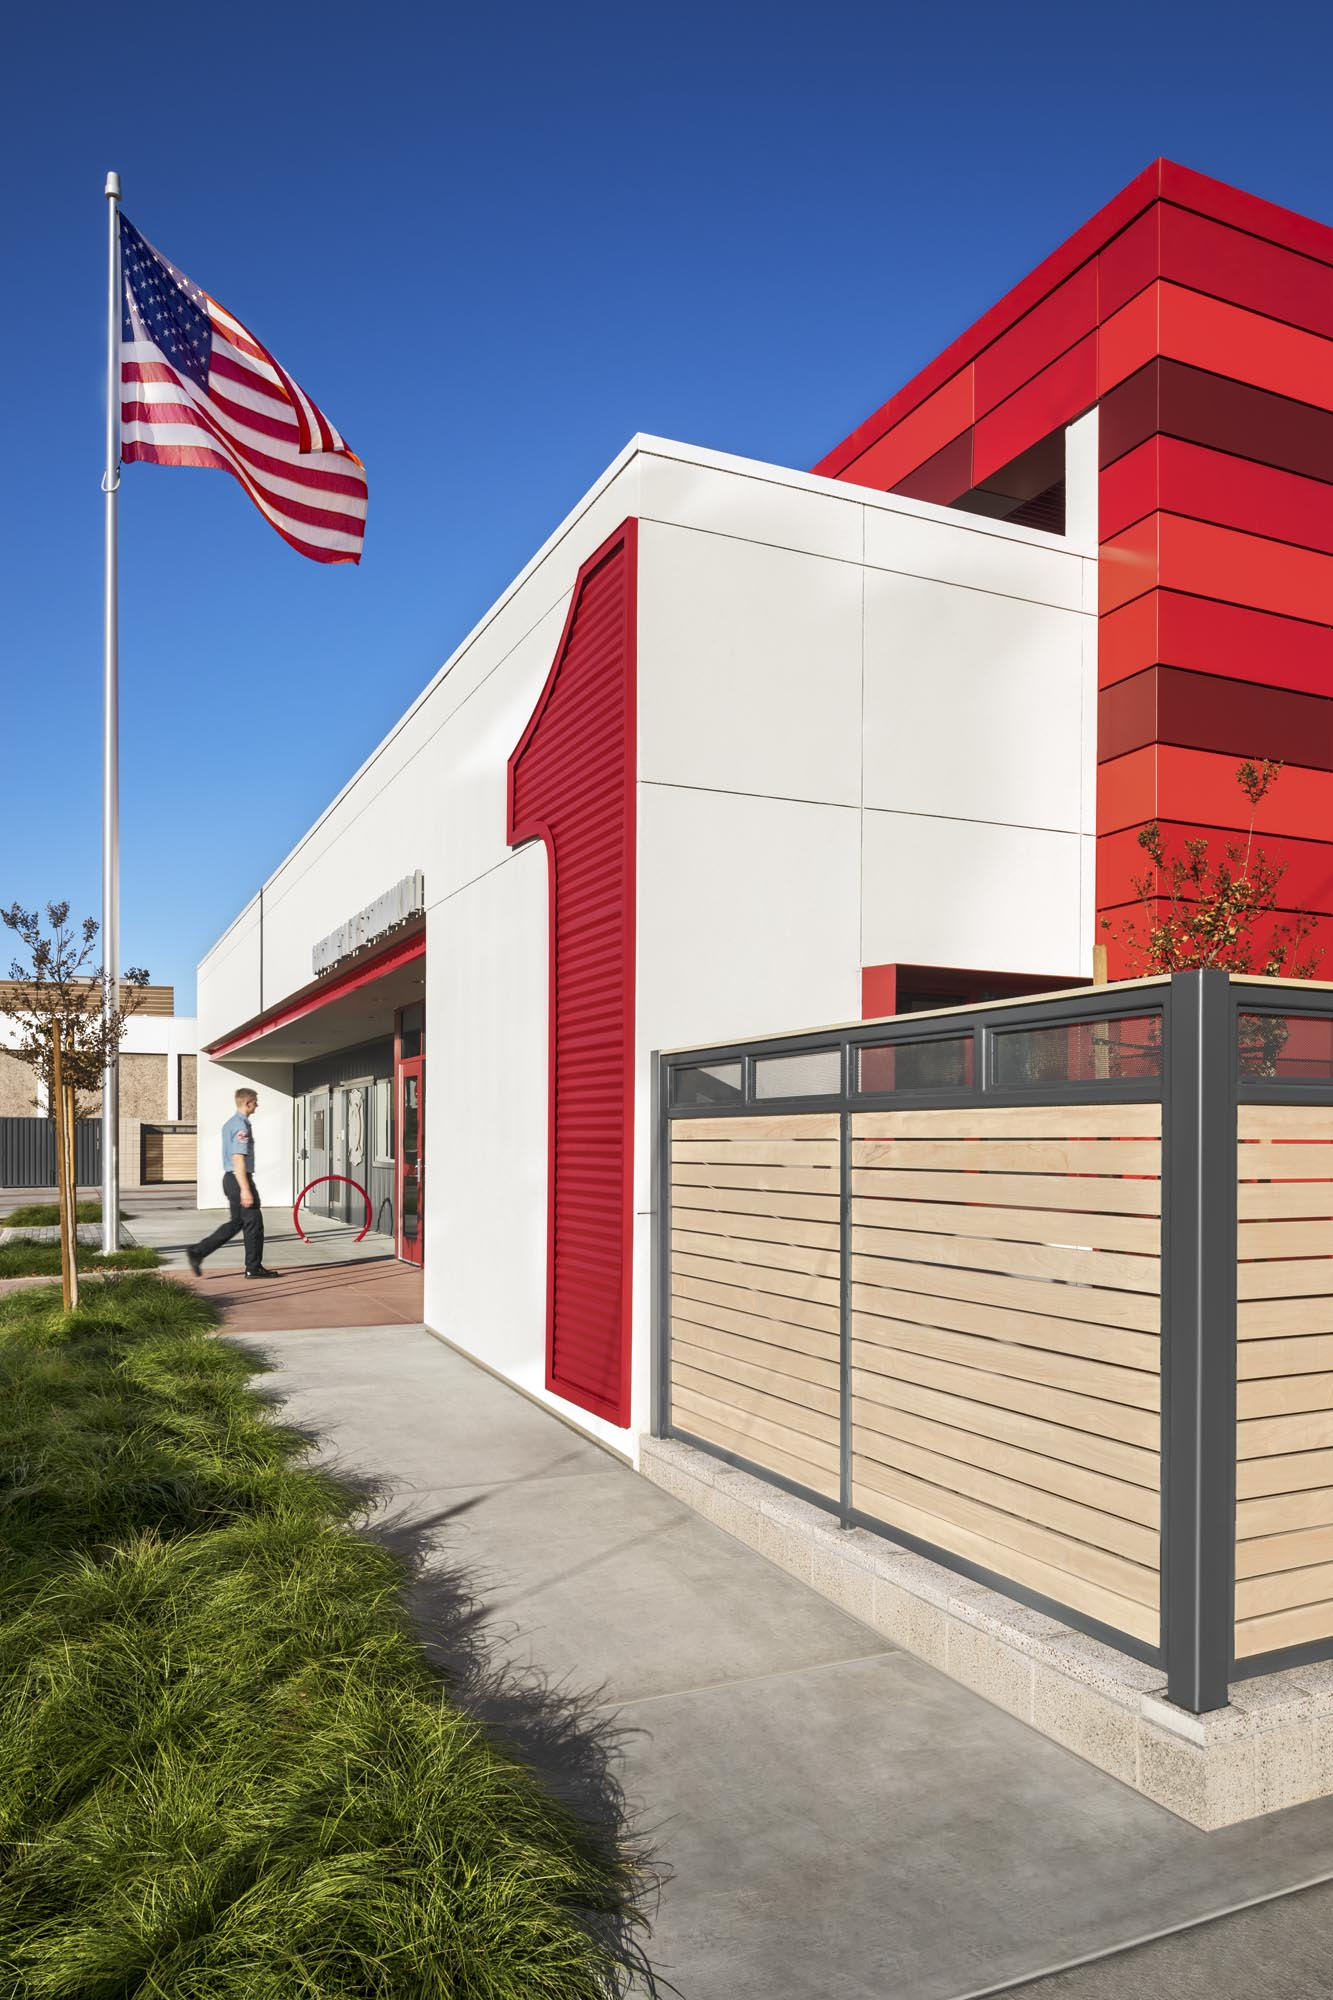 Costa-Mesa-Firestation01.jpg